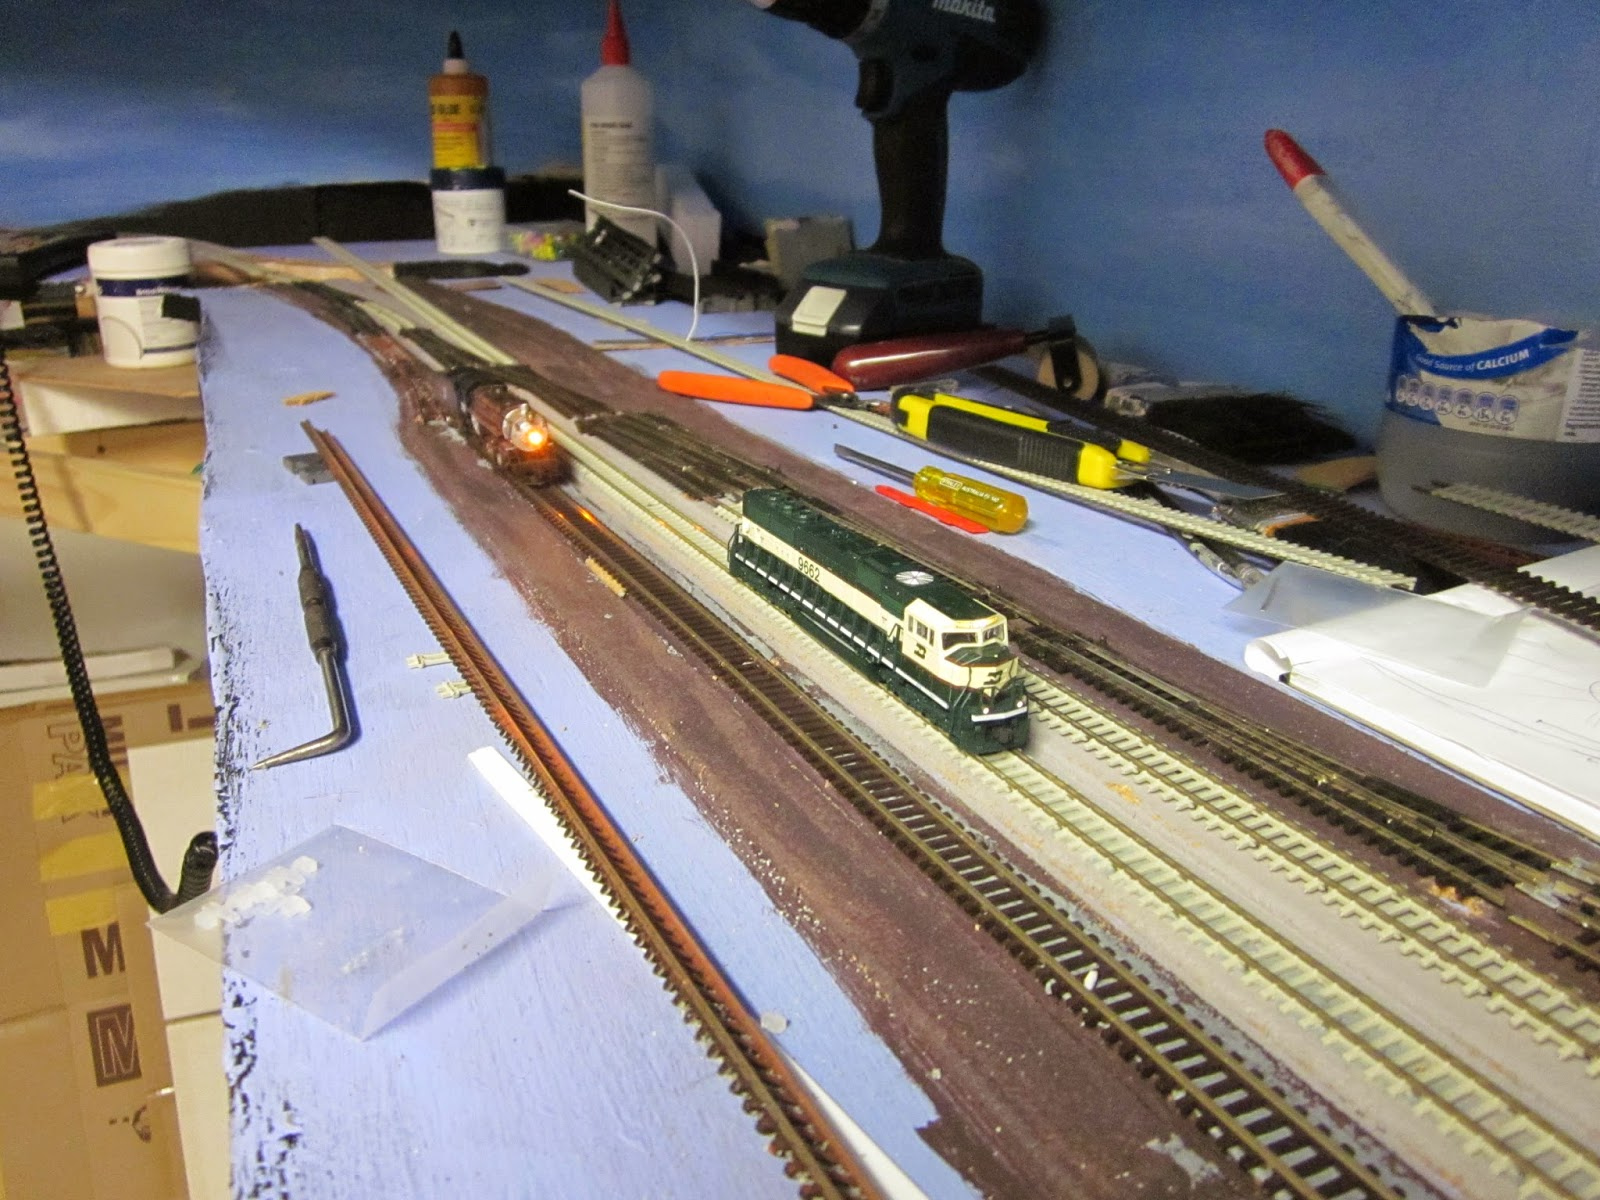 Bnsf N Scale In Australia Boltsnutsand Some Fun Railroad 2014 Plans For Train Track Wiring If You Look Closely There Is Complicated Work Behind The Diesel Including A Crossing All Switched Successfully By Tam Valley Frogjuicer